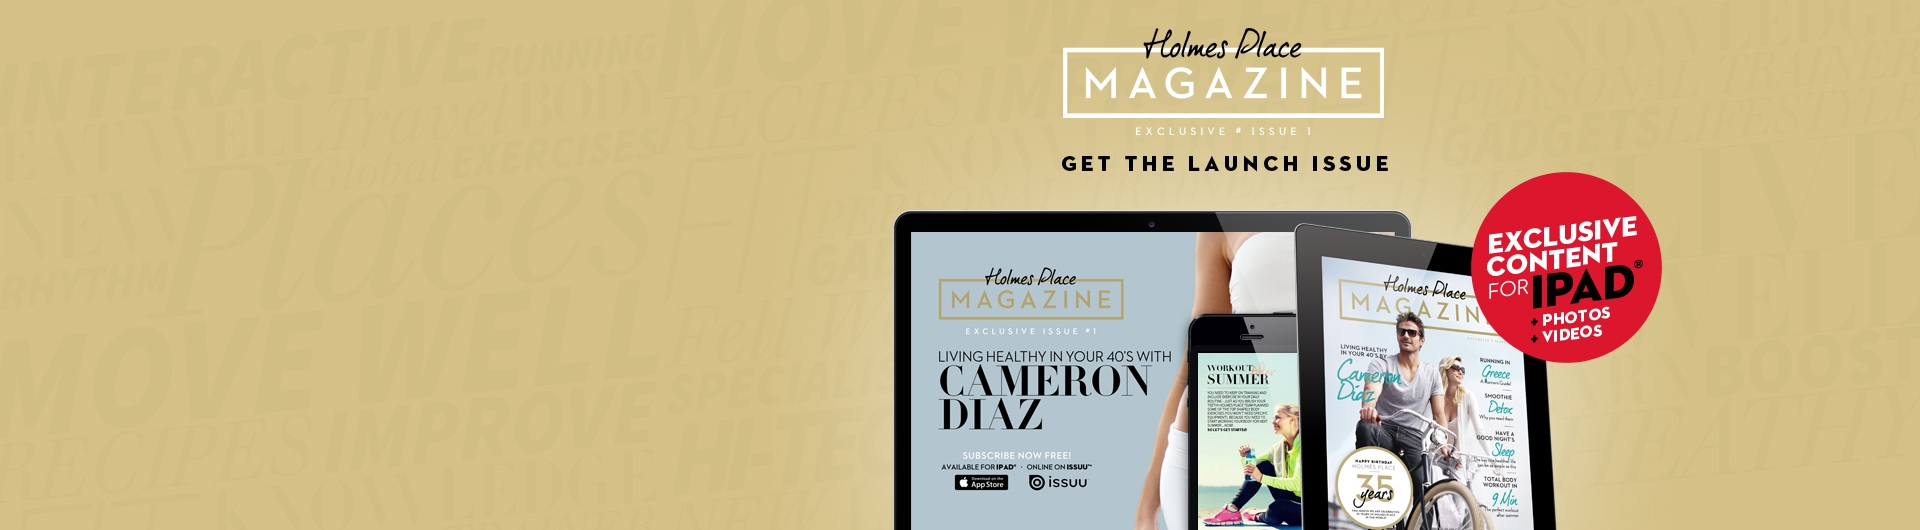 Dowload the new Holmes Place magazine  you new wellness guide to live well!